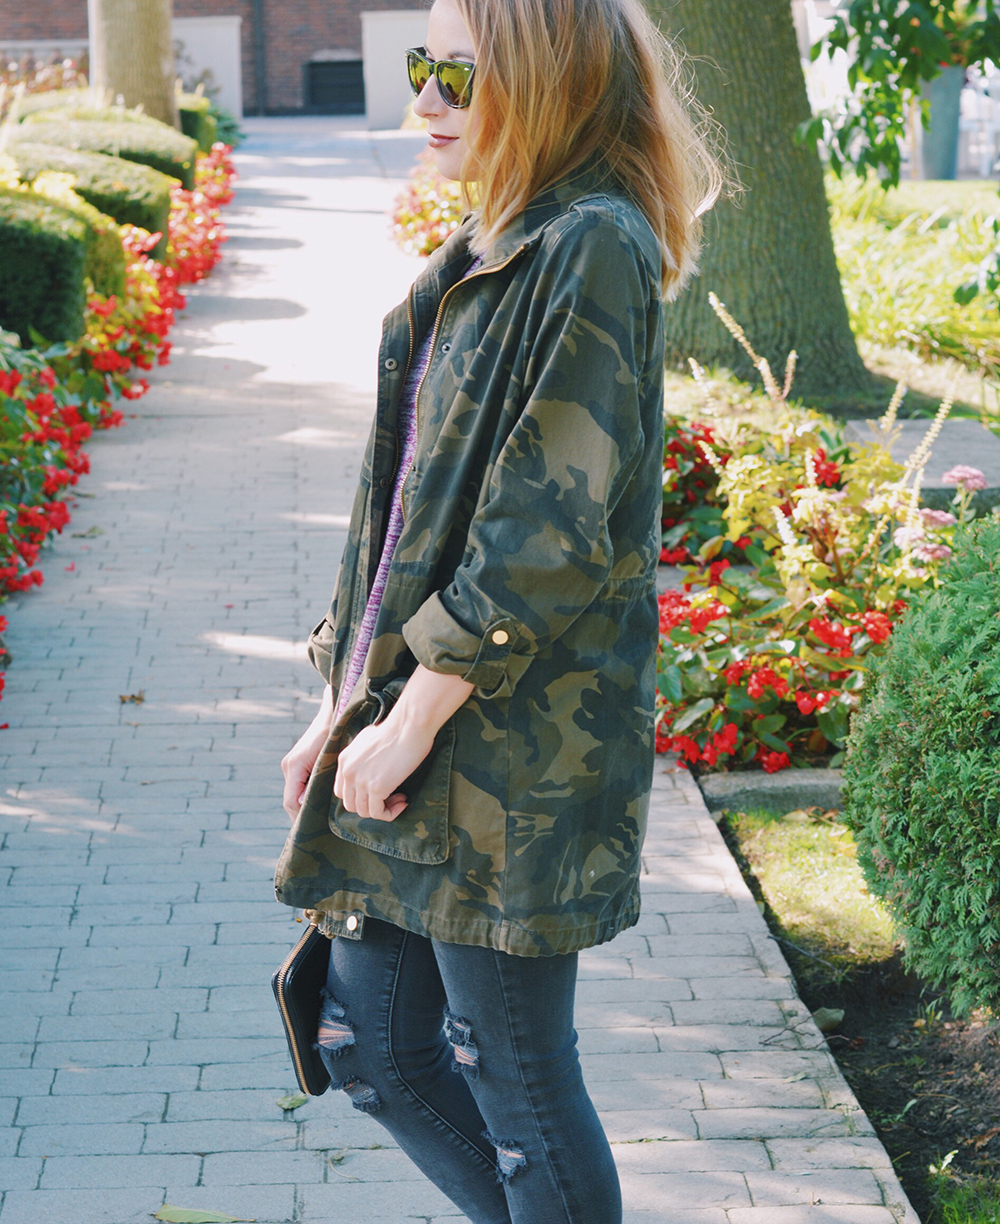 OOTD: The Camouflage Jacket